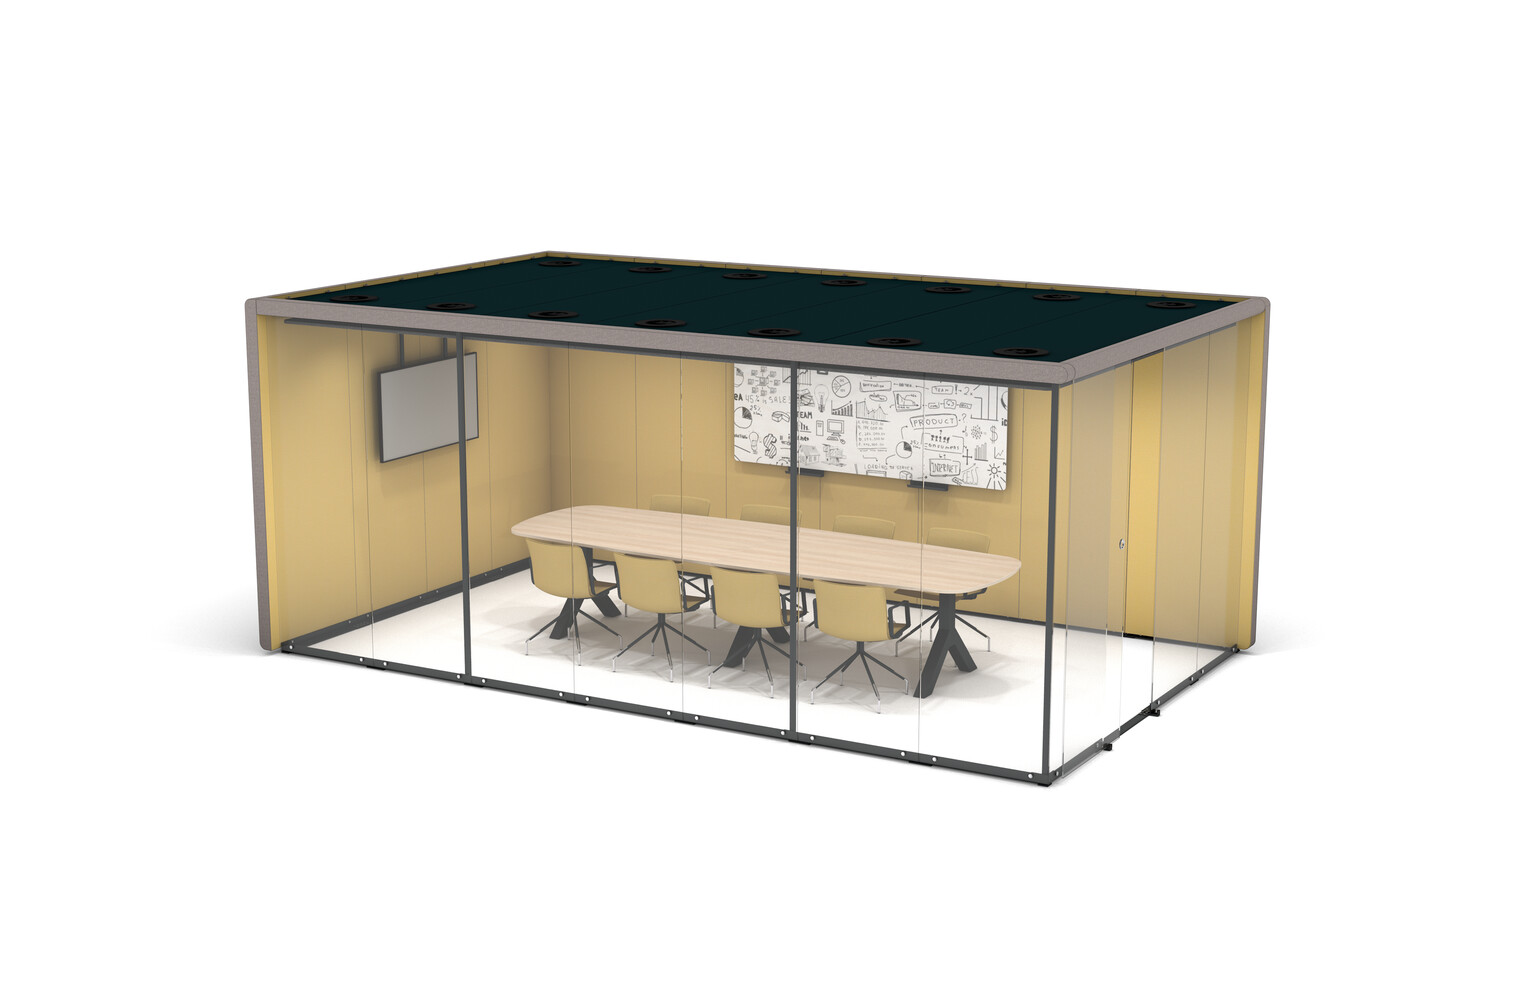 Gispen MOXX space in space 4 by 7 panels upholstered in grey and yellow with sliding door and Team Design table and Nomi Work chairs front right view